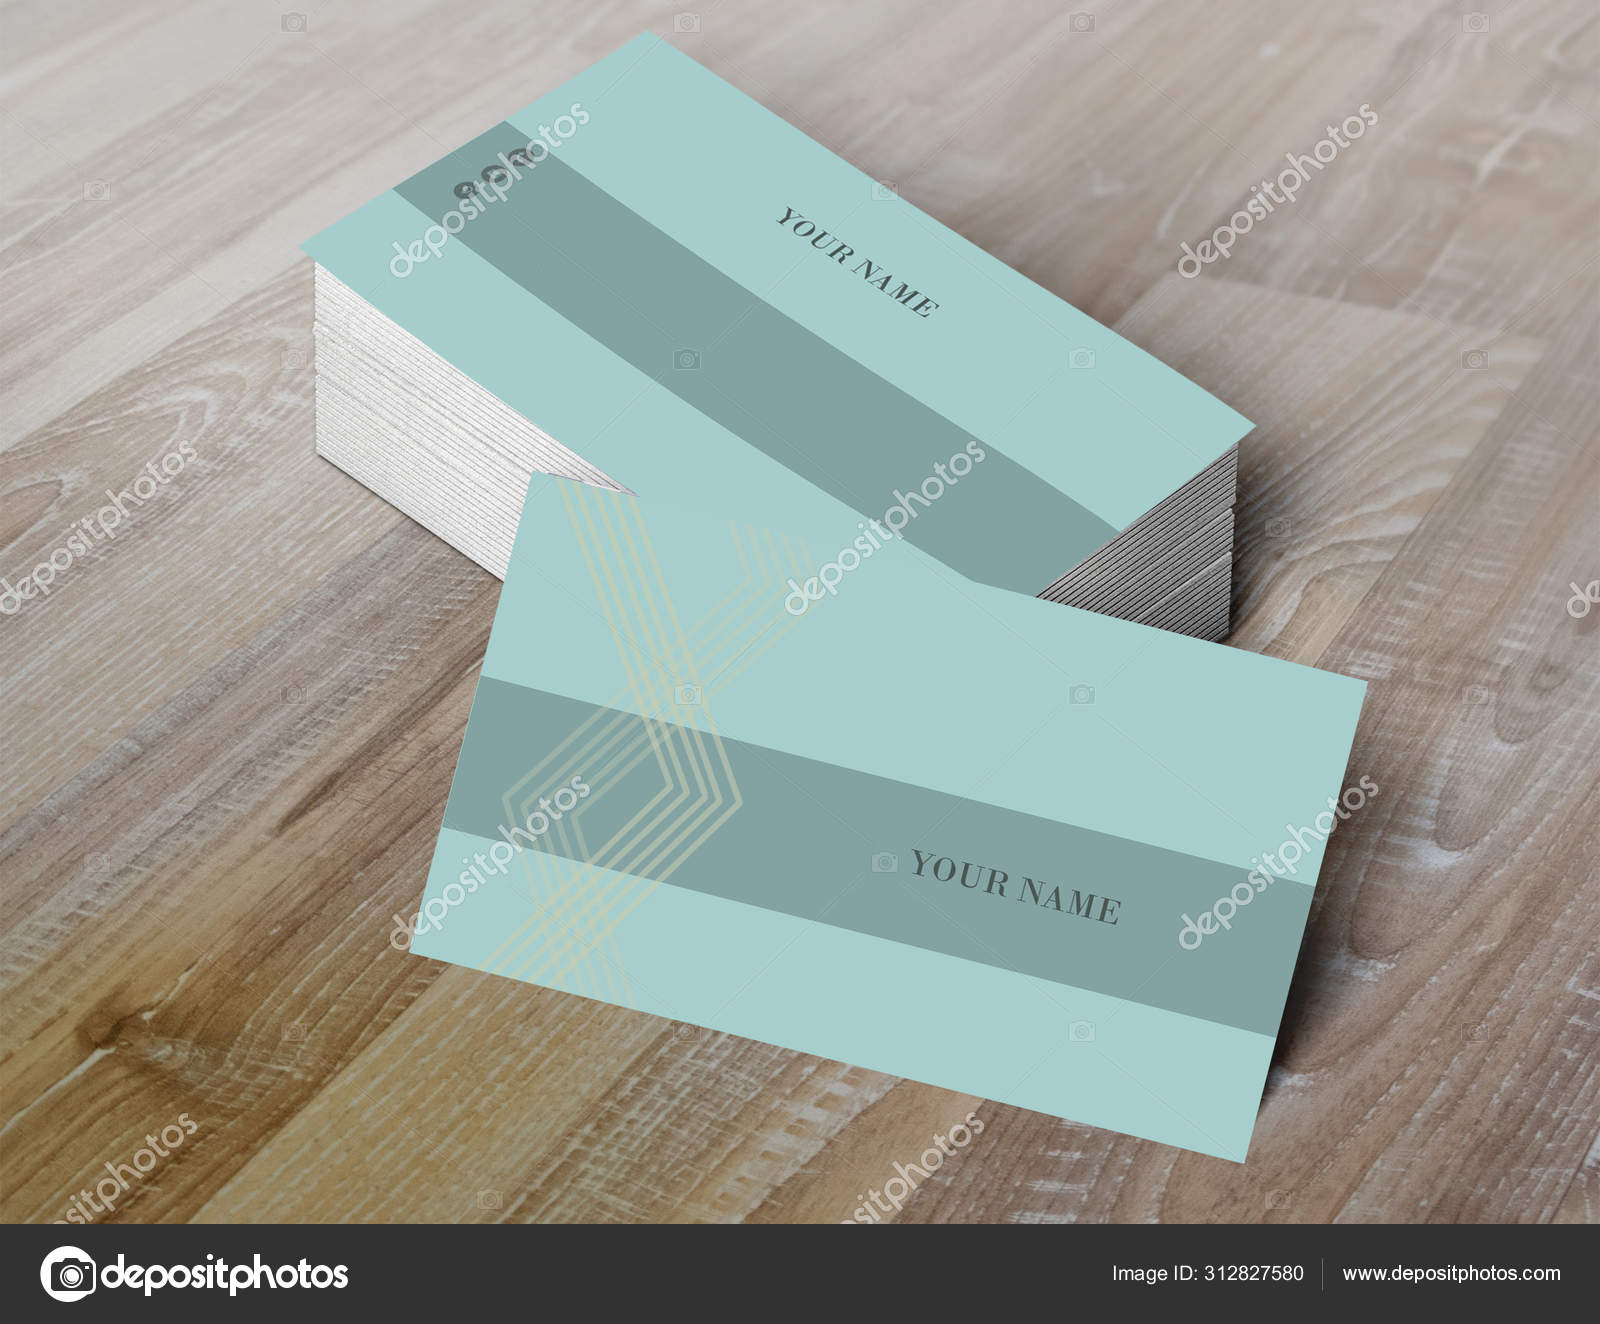 Business card template-stock image